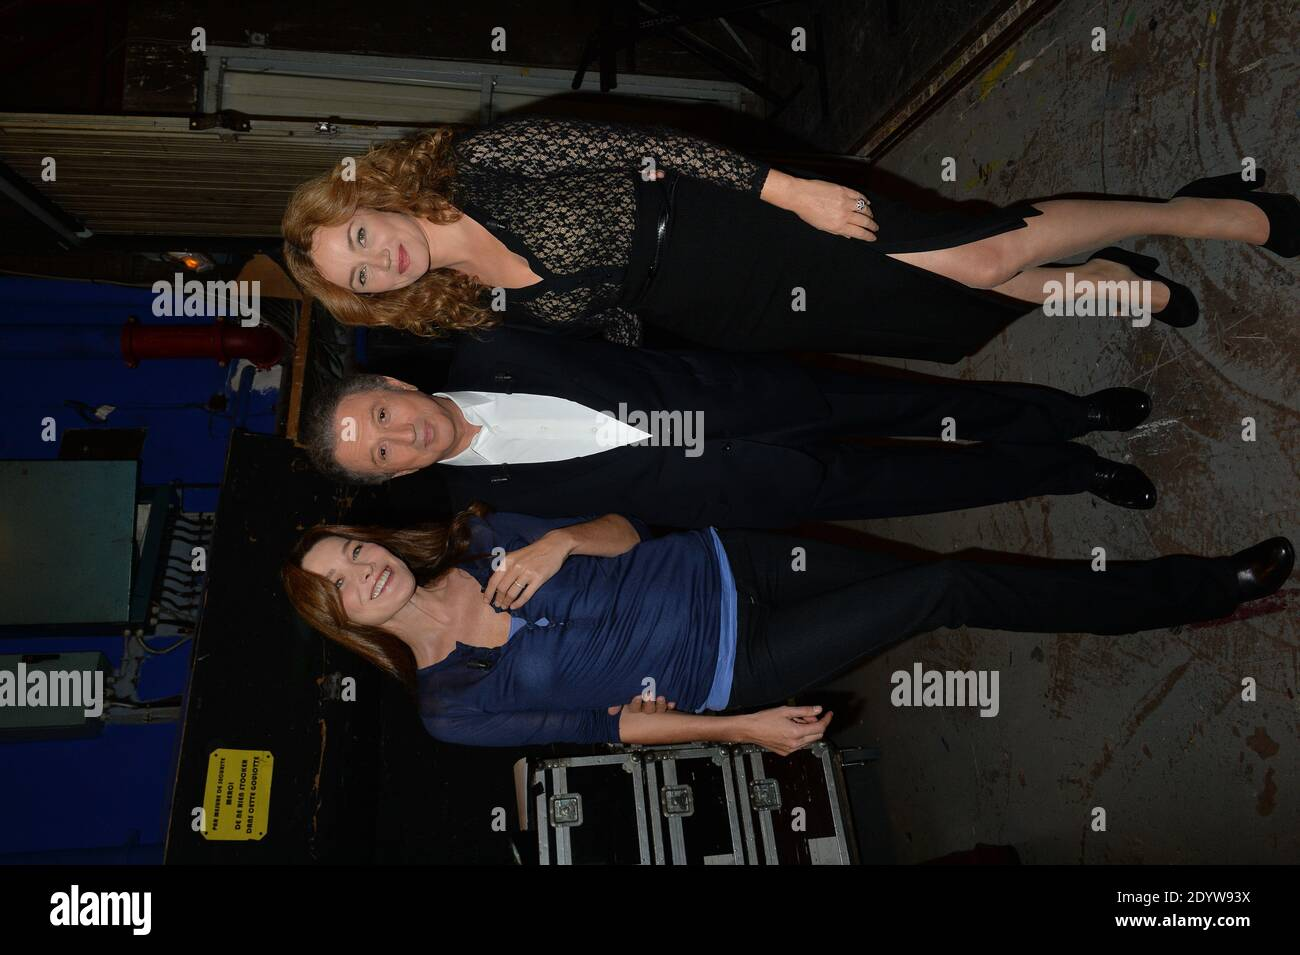 Carla Bruni-Sarkozy, Michel Drucker and Marine Delterme at the taping of Vivement Dimanche on September 23, 2013 in Paris, France. Photo by Max Colin/ABACAPRESS.COM Stock Photo